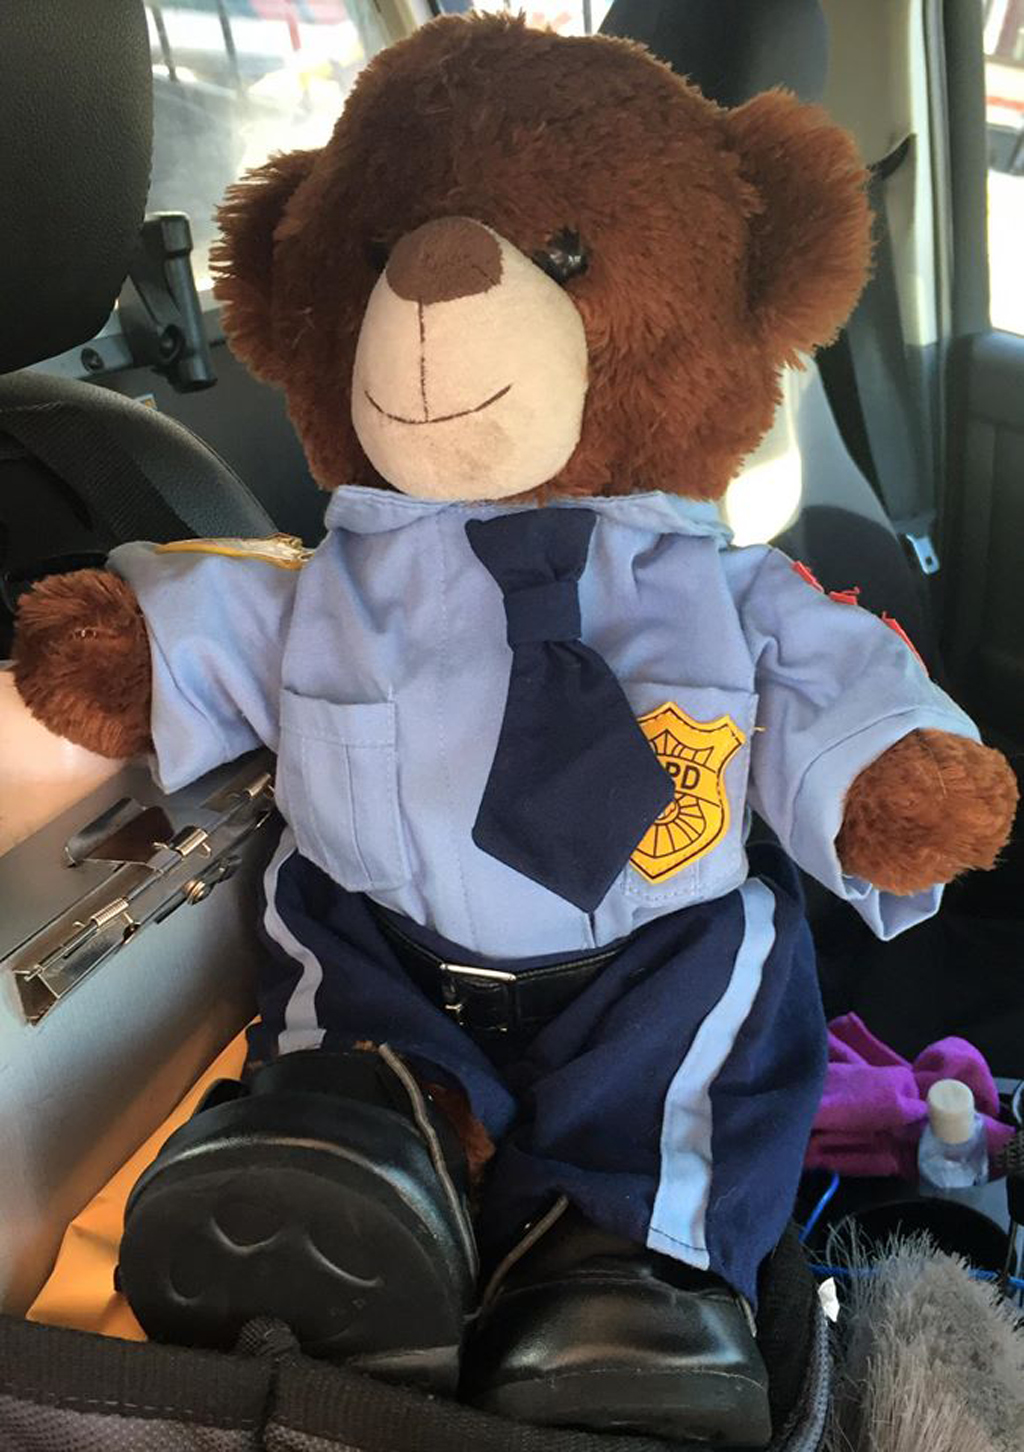 The teddy was even given his own uniform. (Facebook)